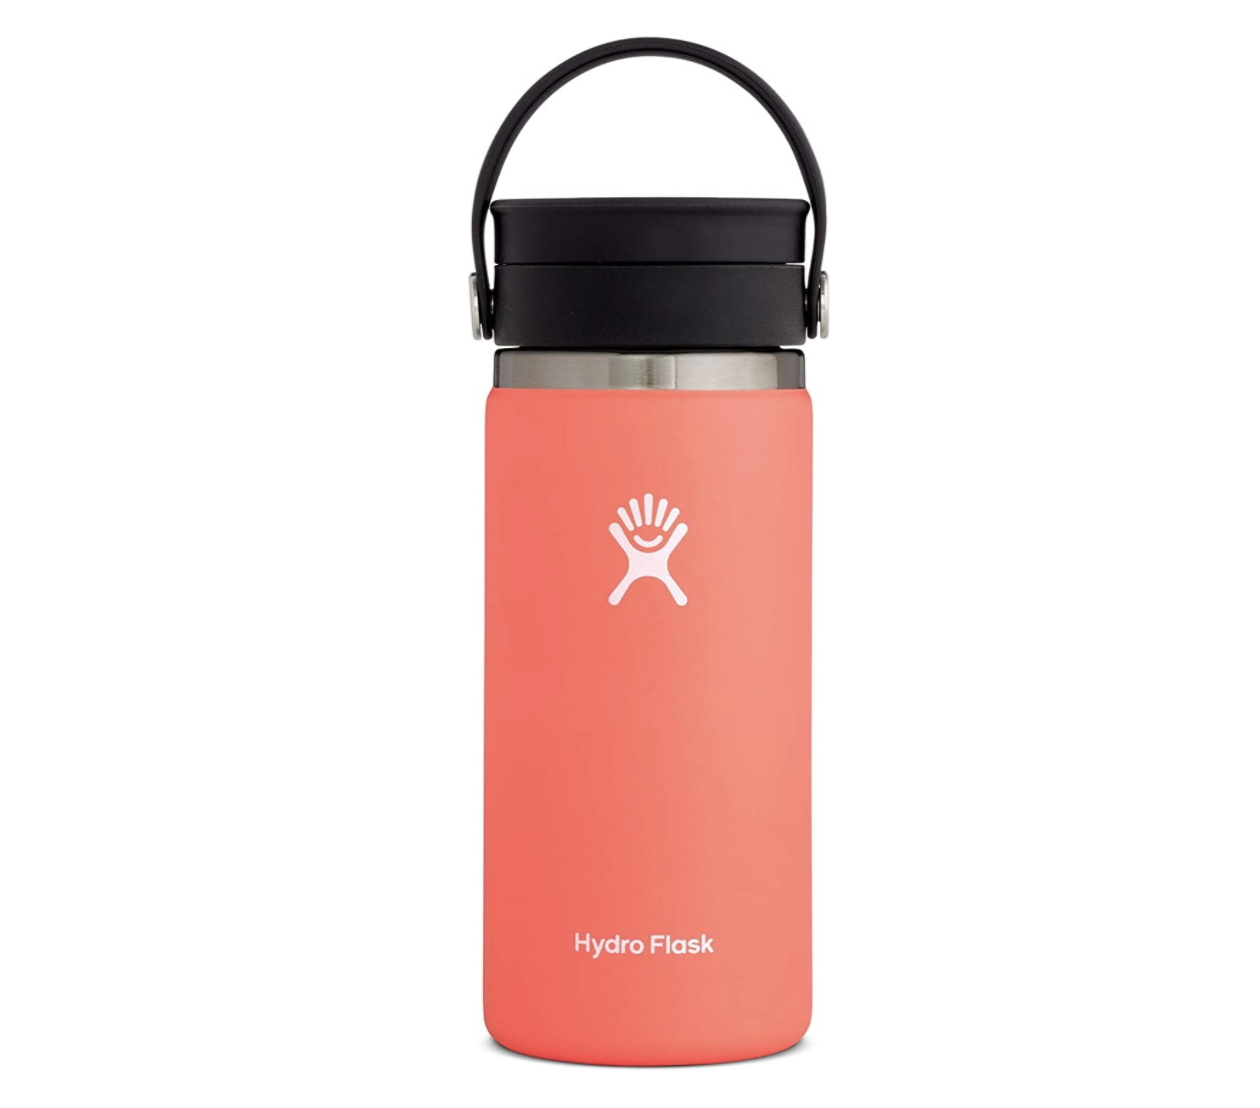 11 Best Travel Coffee Mug Reviews 2021 Top Rated Insulated Travel Mugs